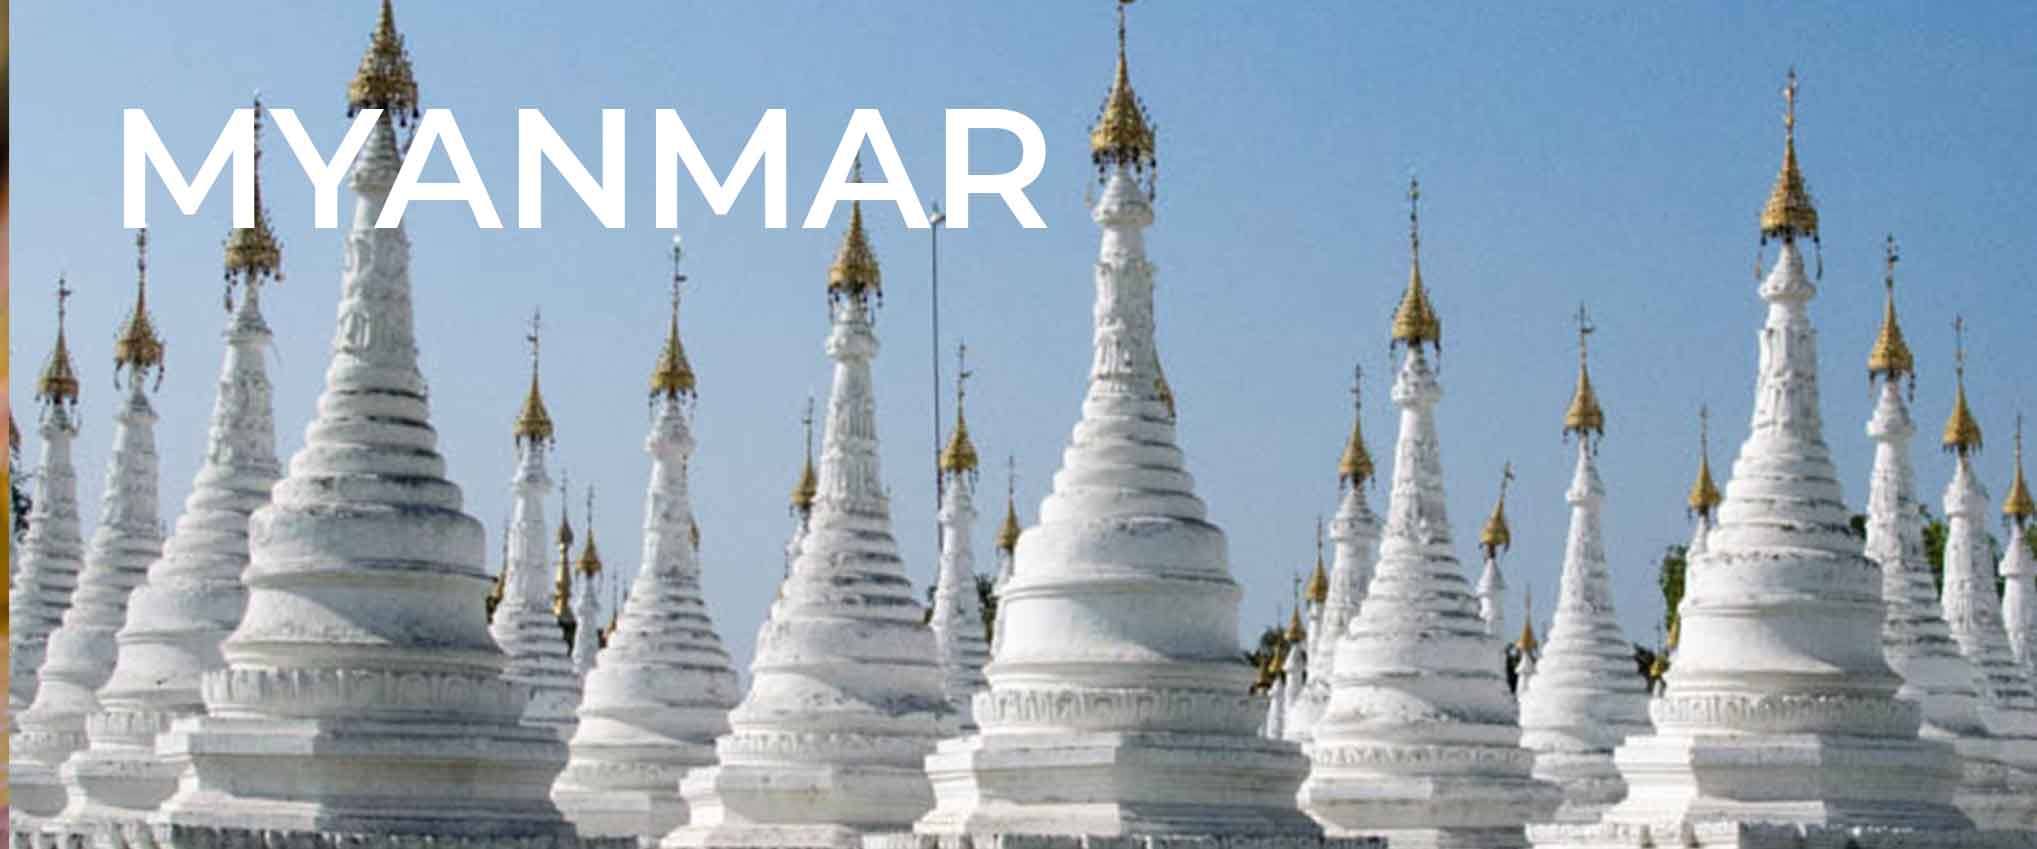 Myanmar-page-banner